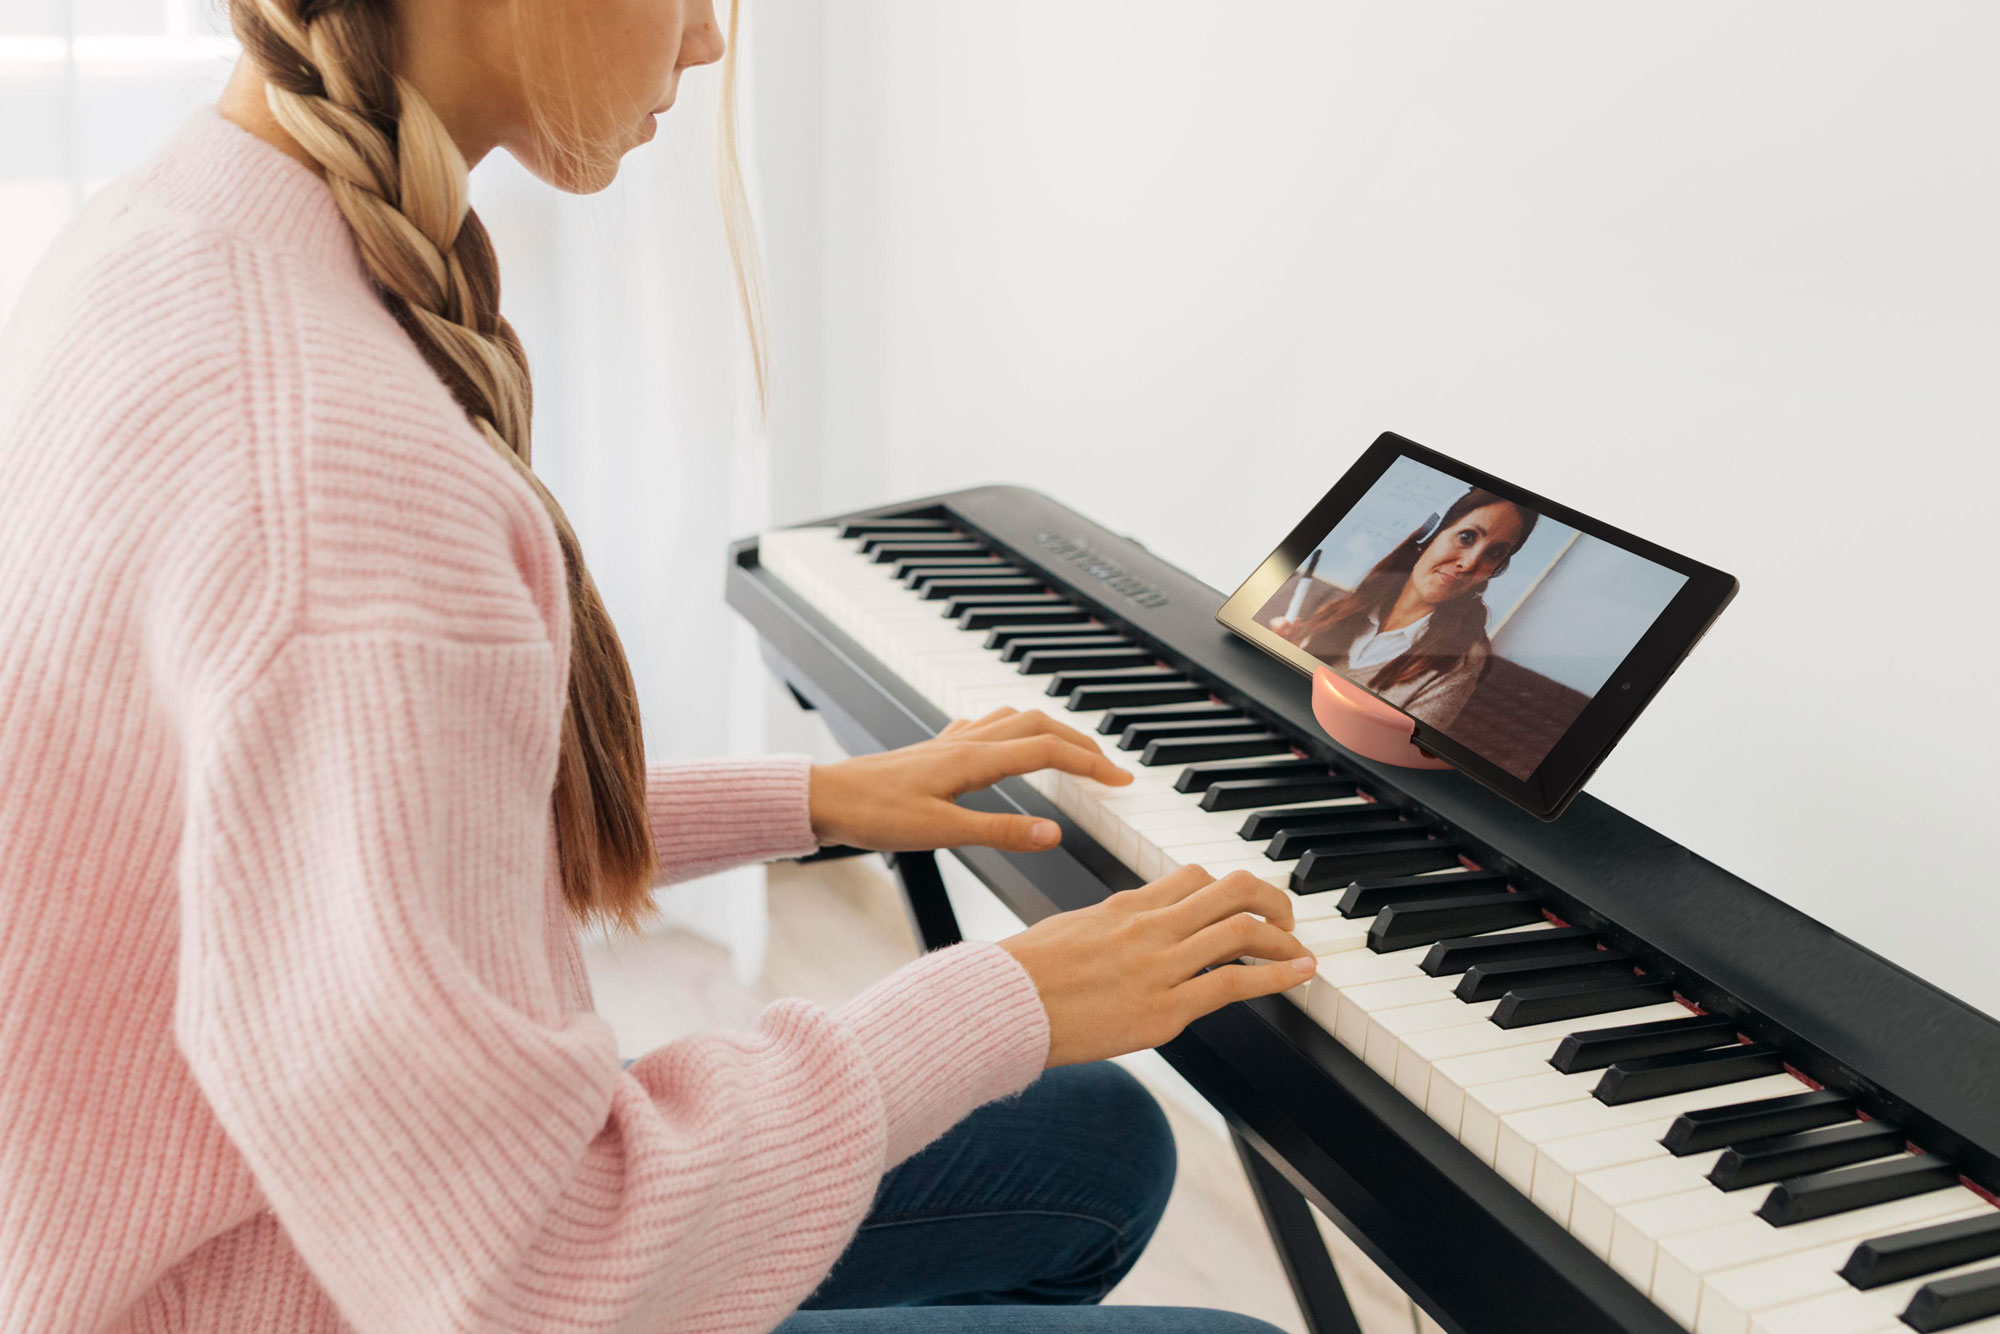 5-Ways-Your-GoDonut-Can-Help-You-Play-Music-1